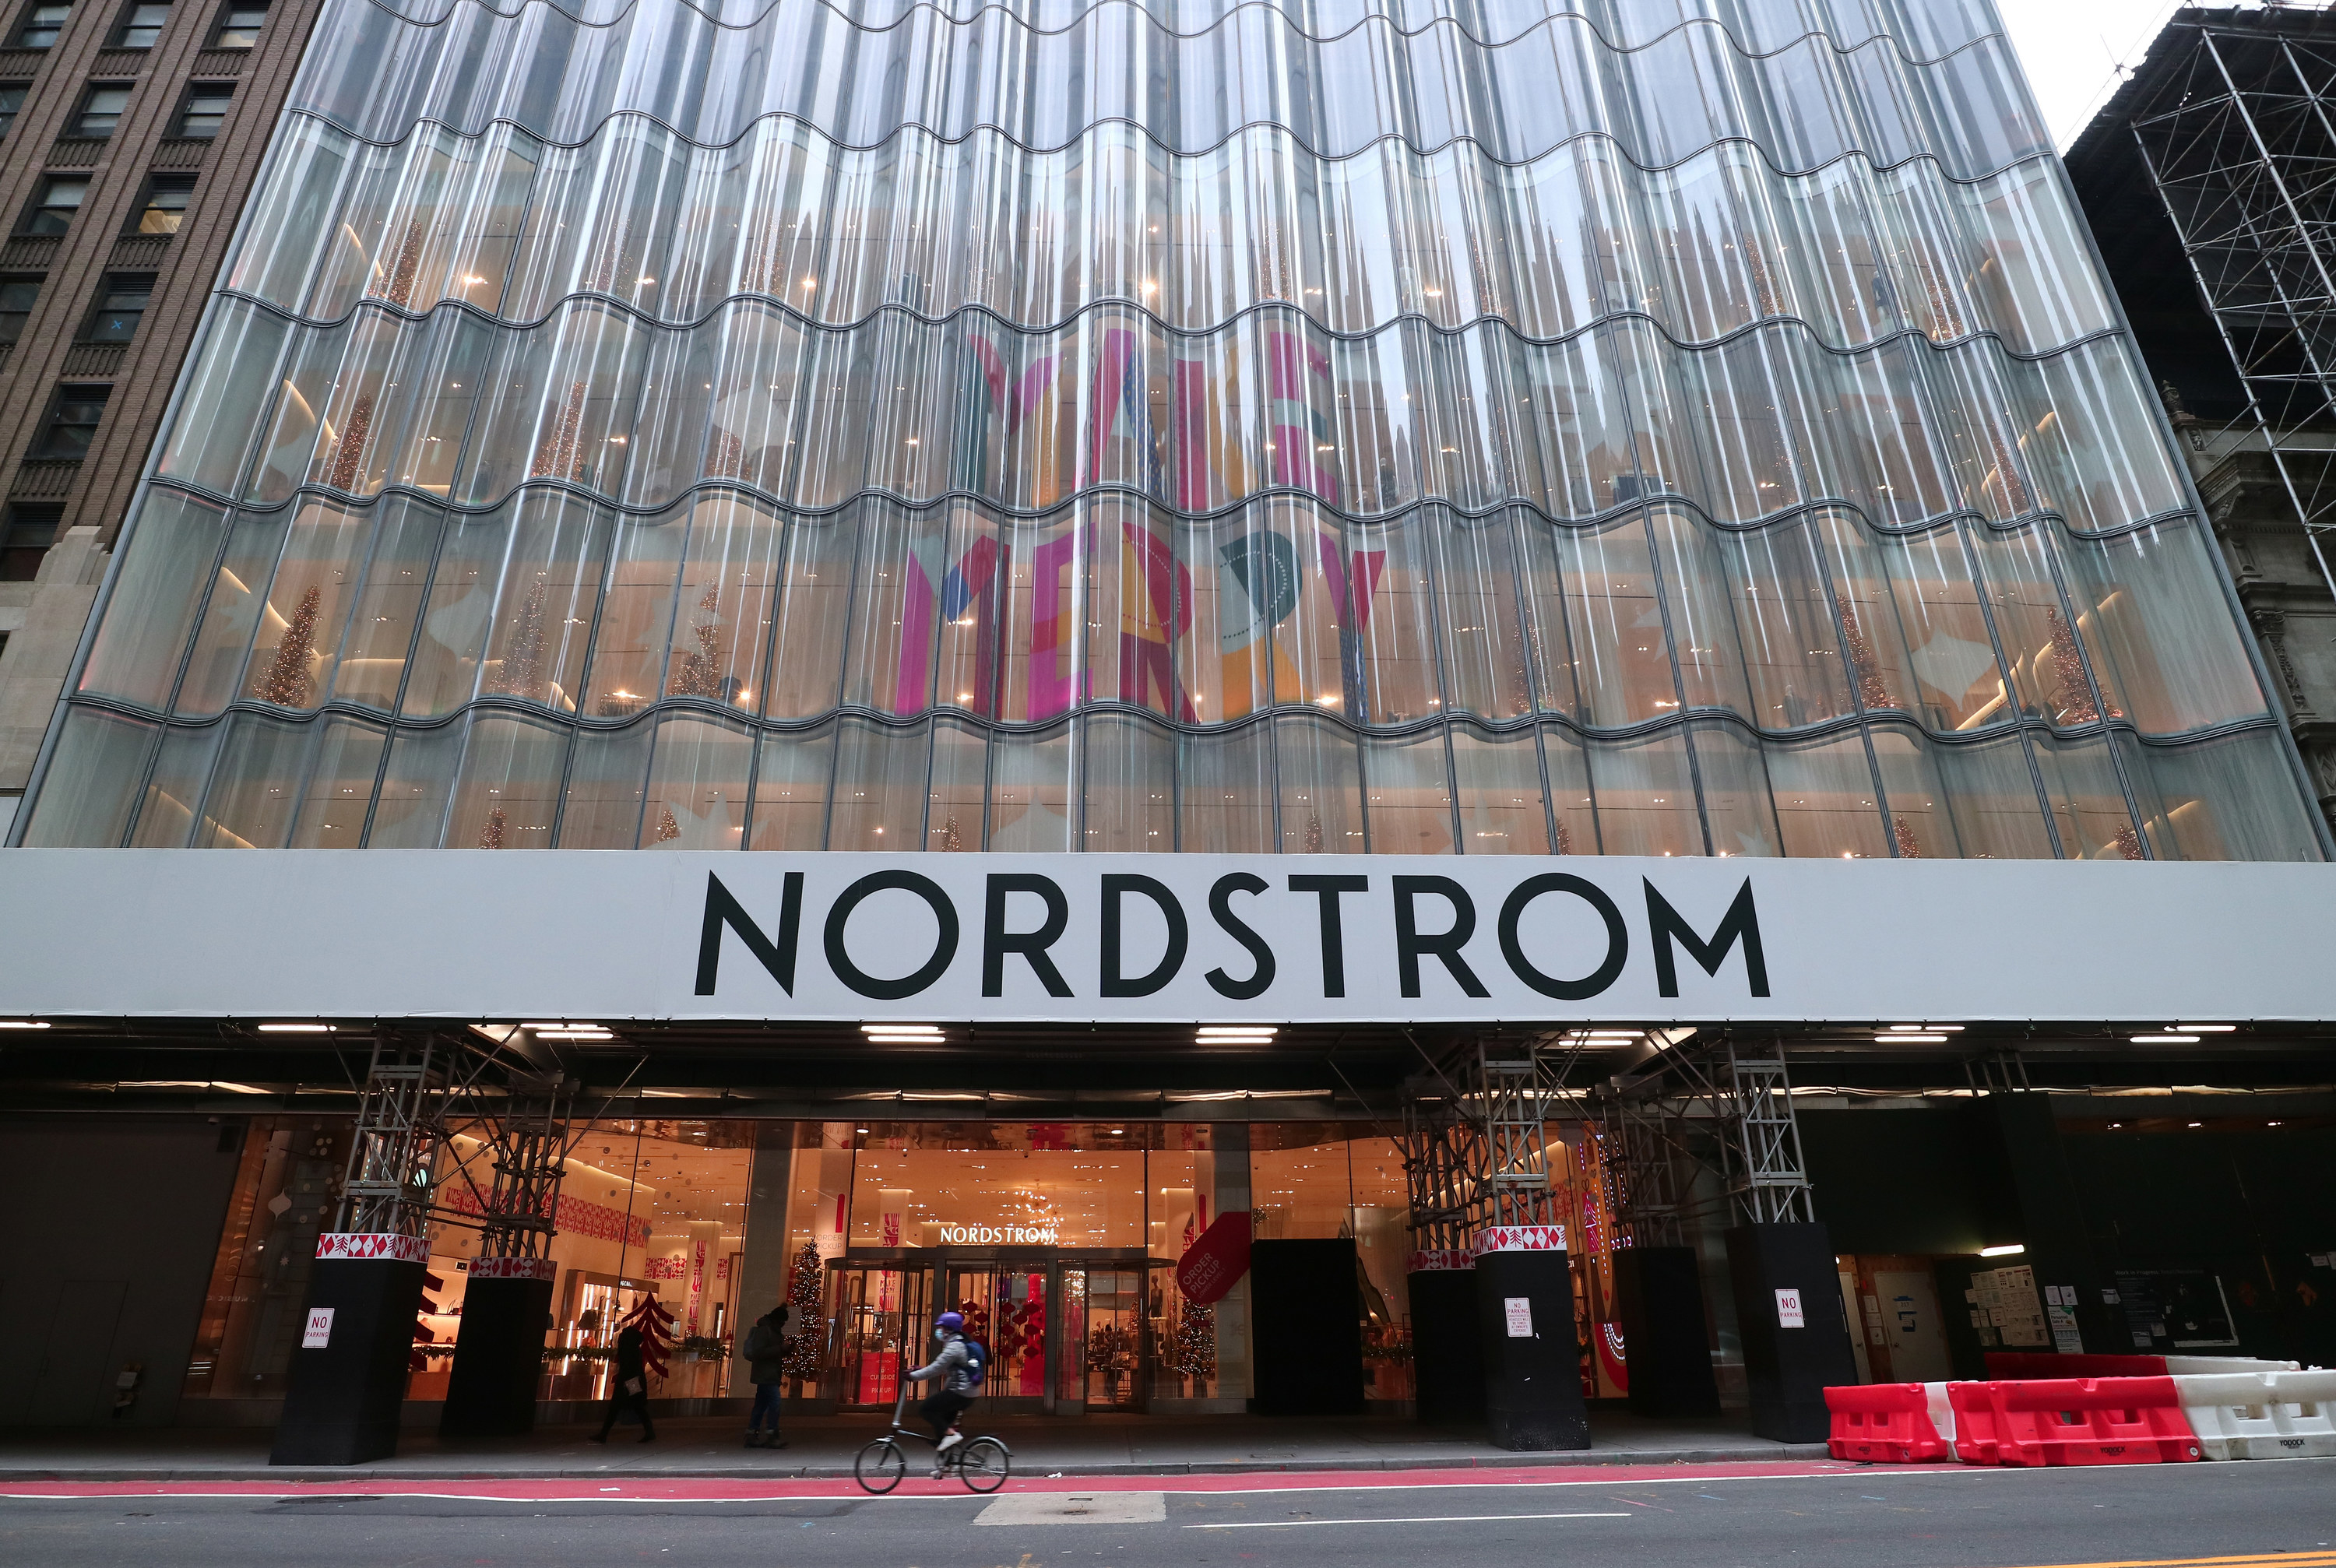 An exterior view of Nordstrom